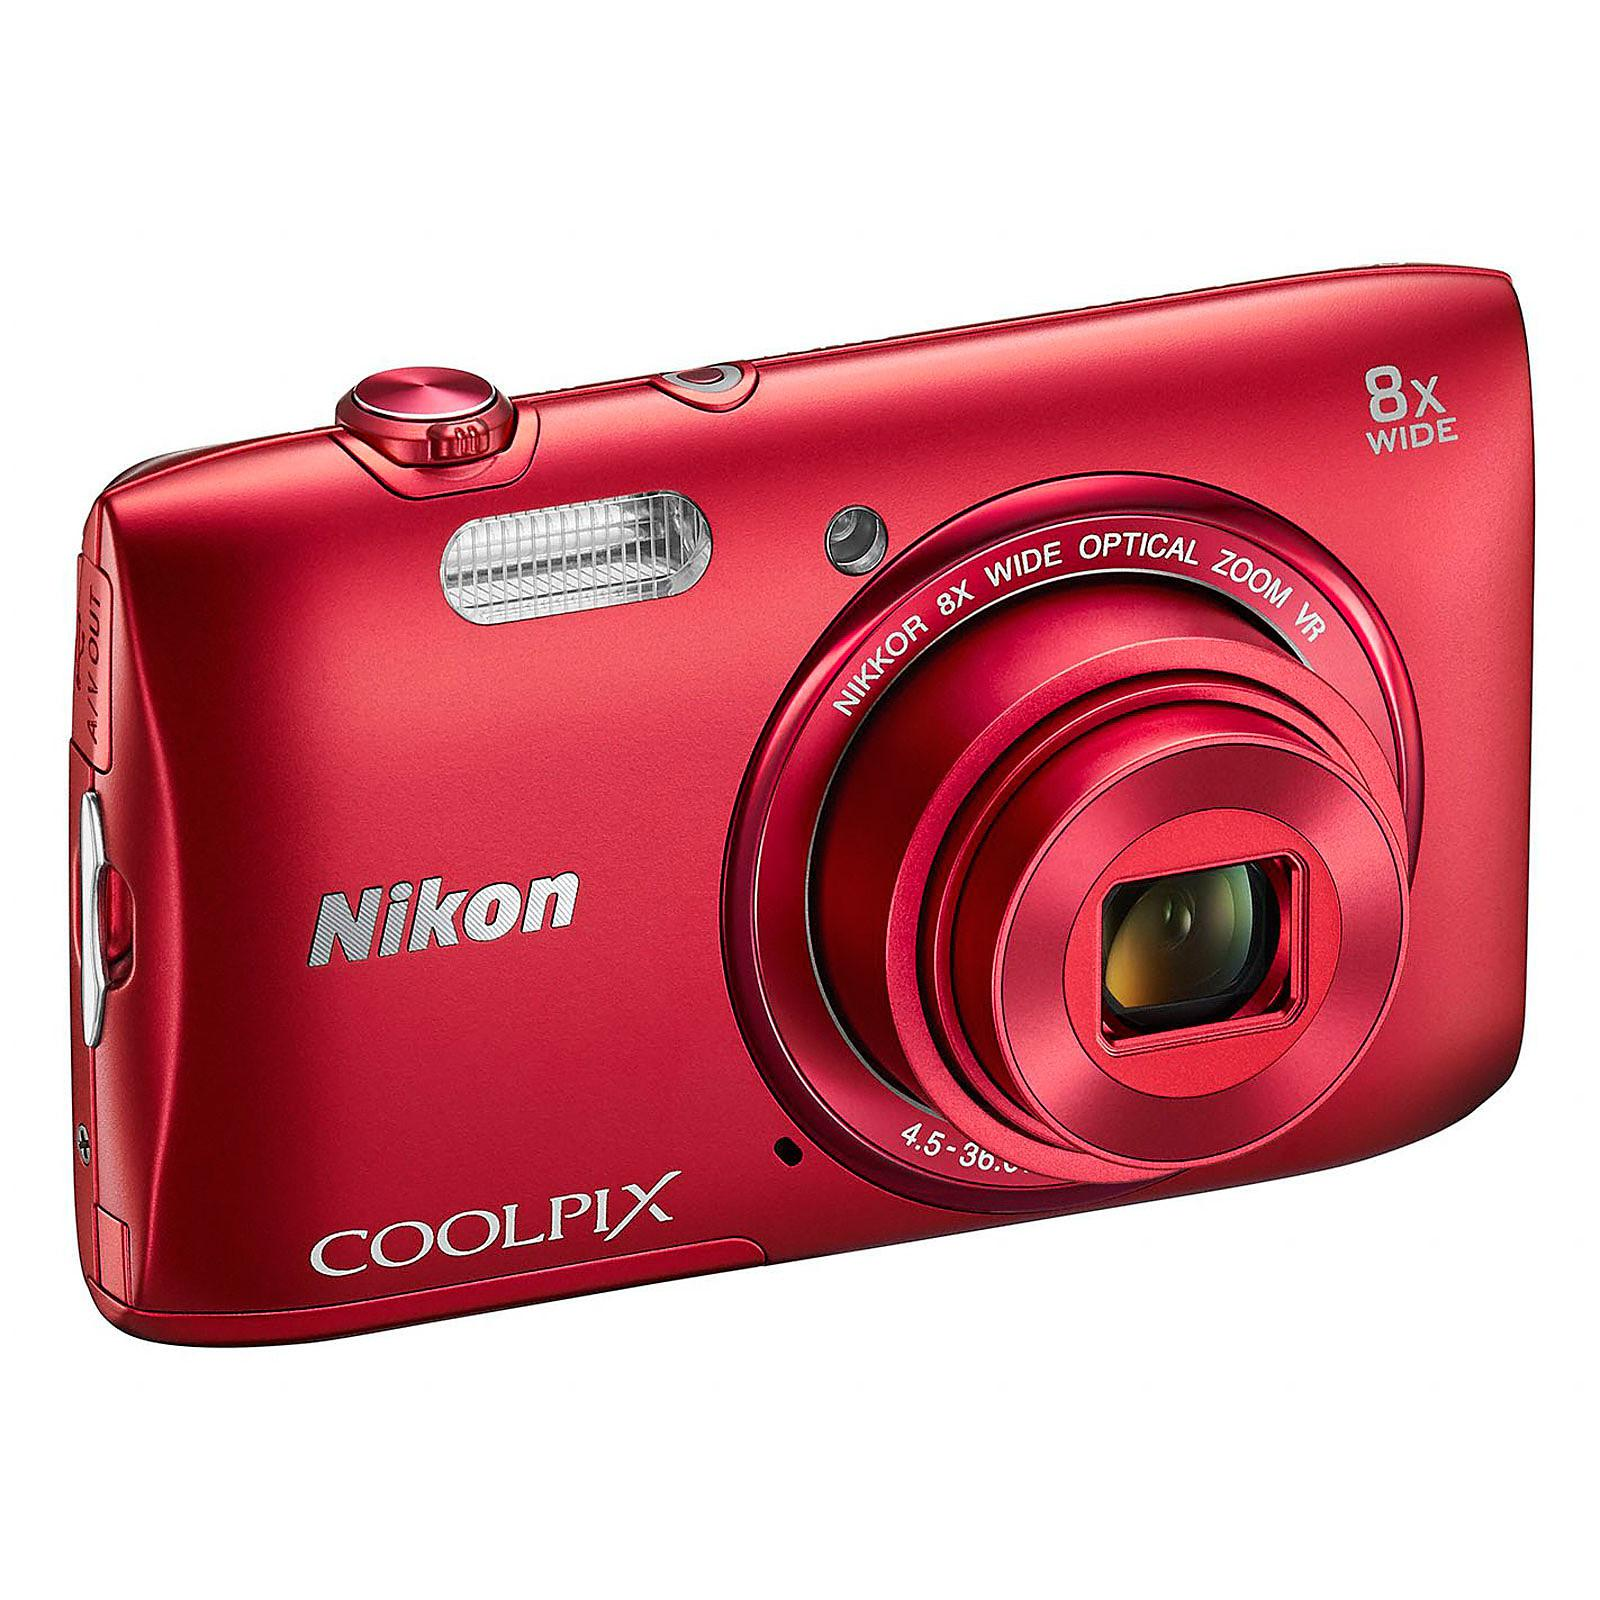 Nikon Coolpix S3600 Compact 20 - Red